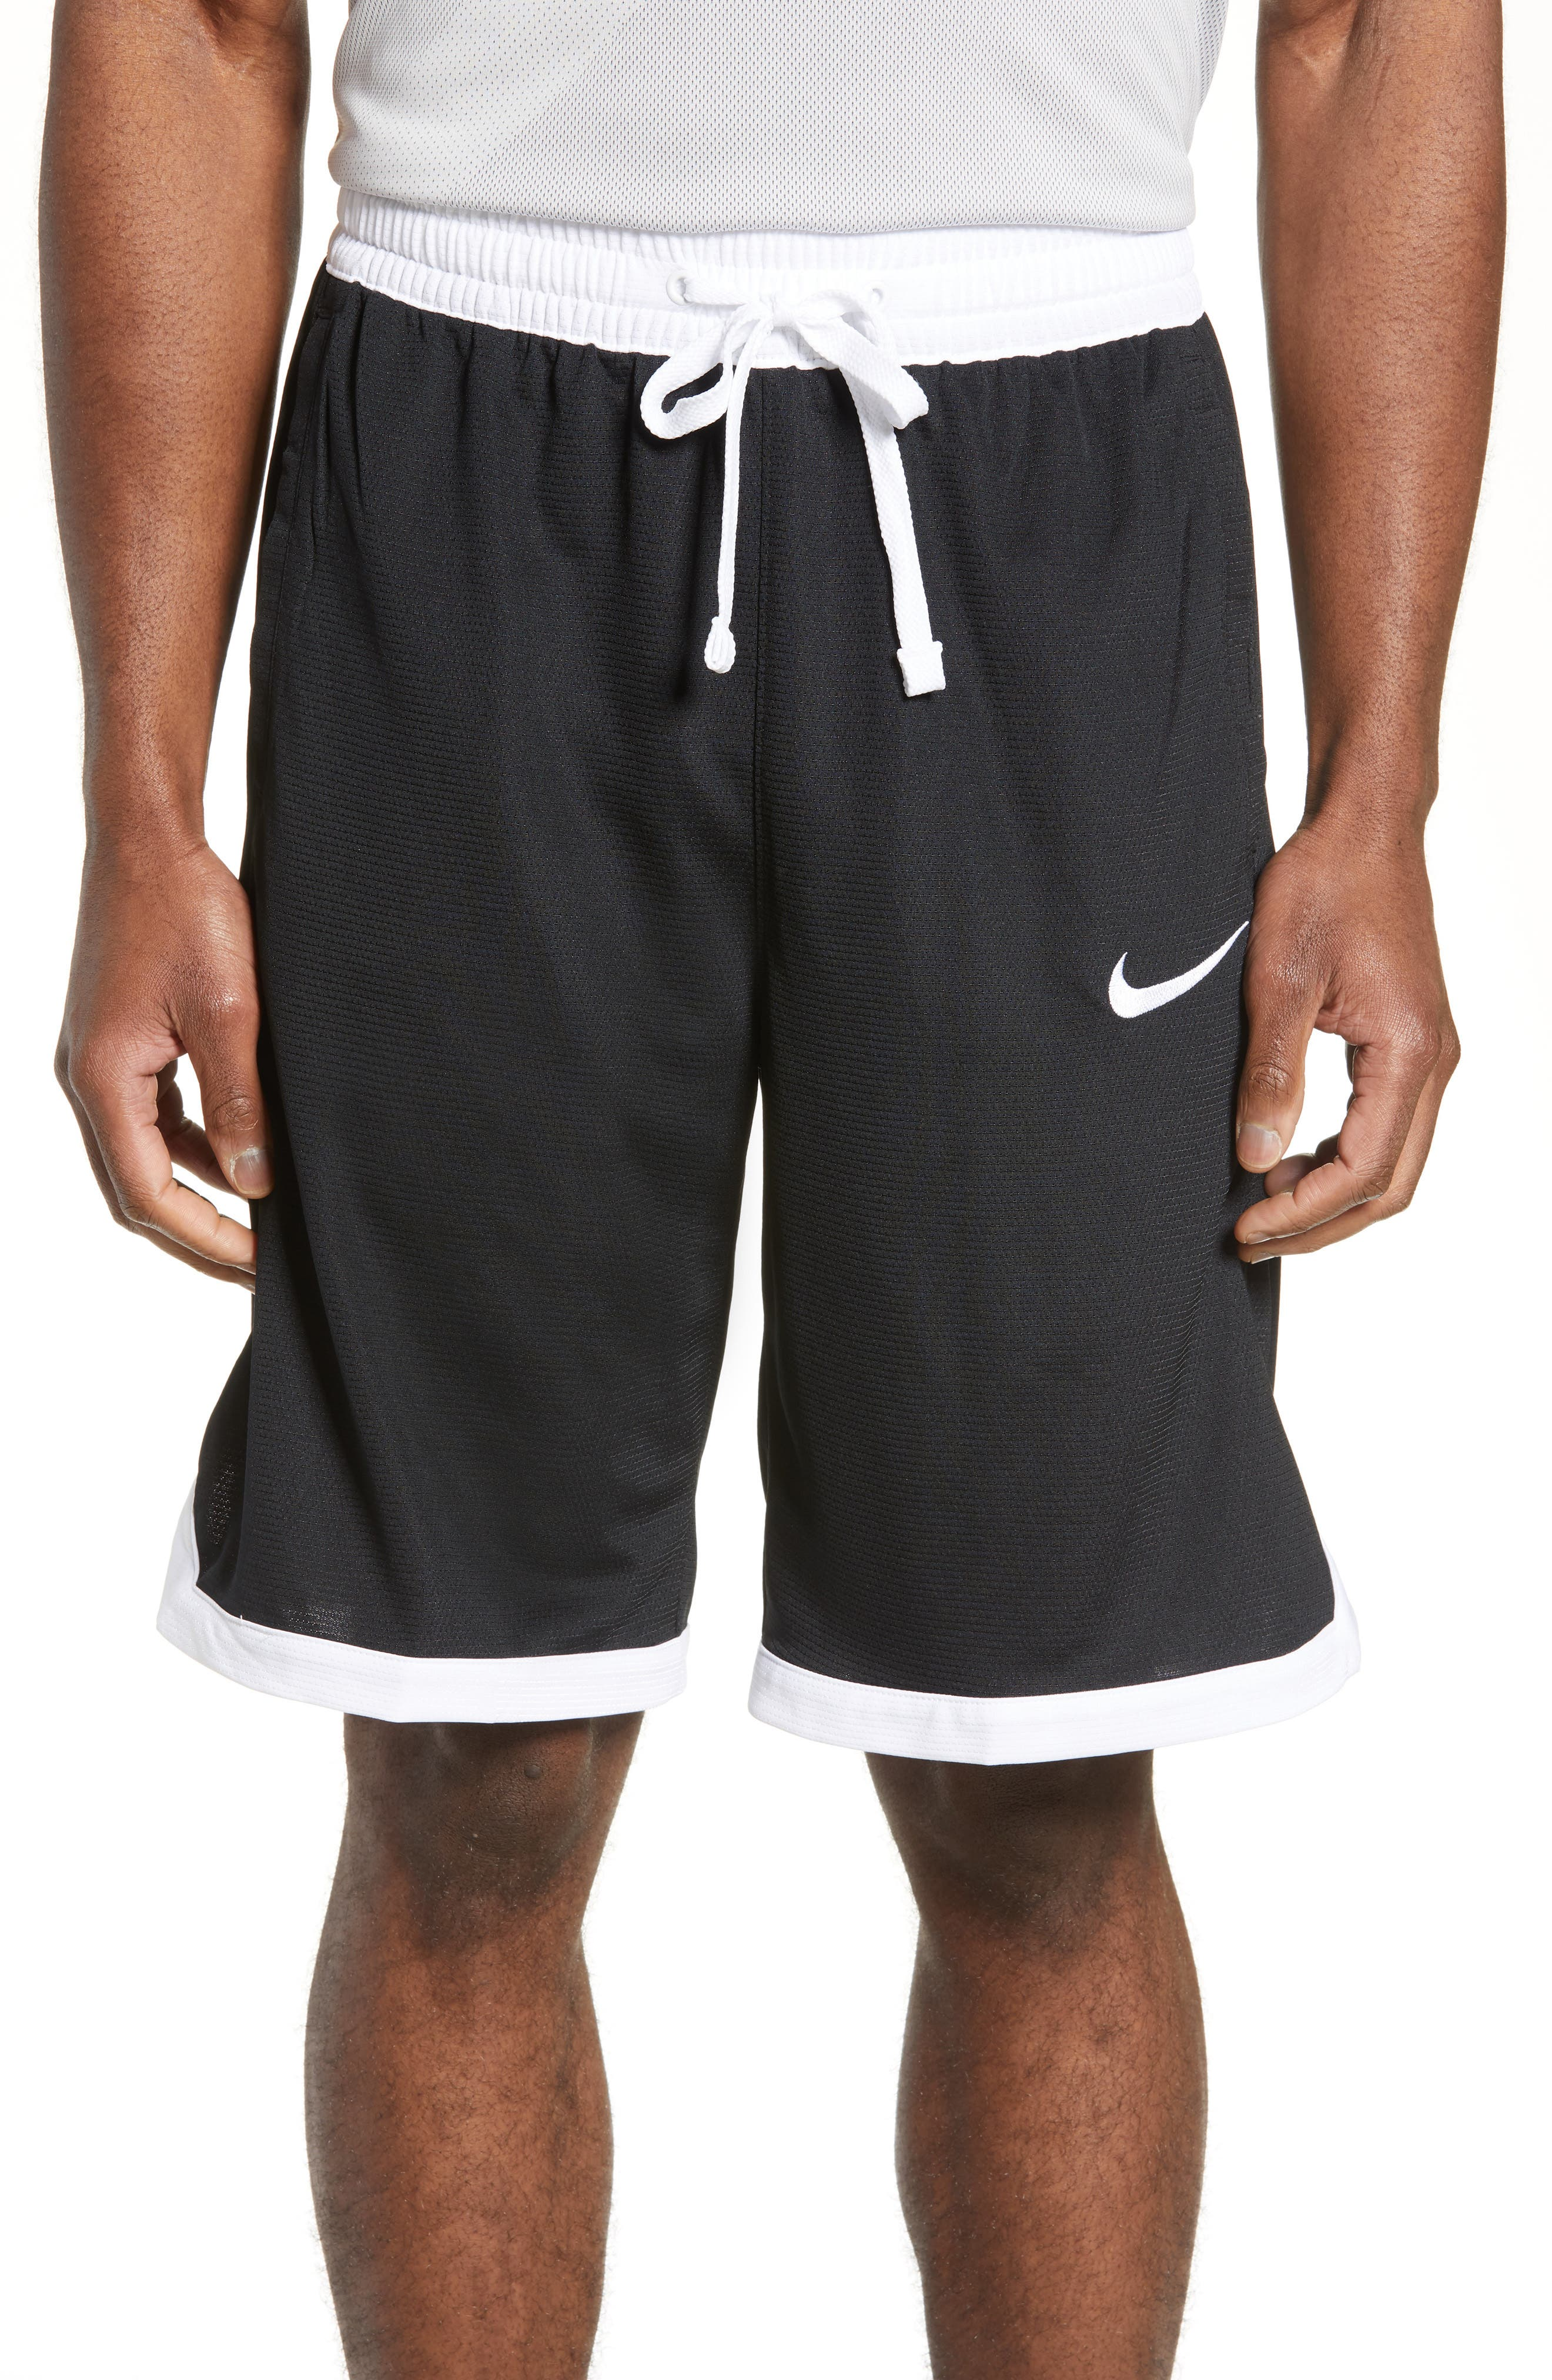 NIKE,                             Dry Elite Stripe Basketball Shorts,                             Main thumbnail 1, color,                             BLACK/ WHITE/ WHITE/ WHITE